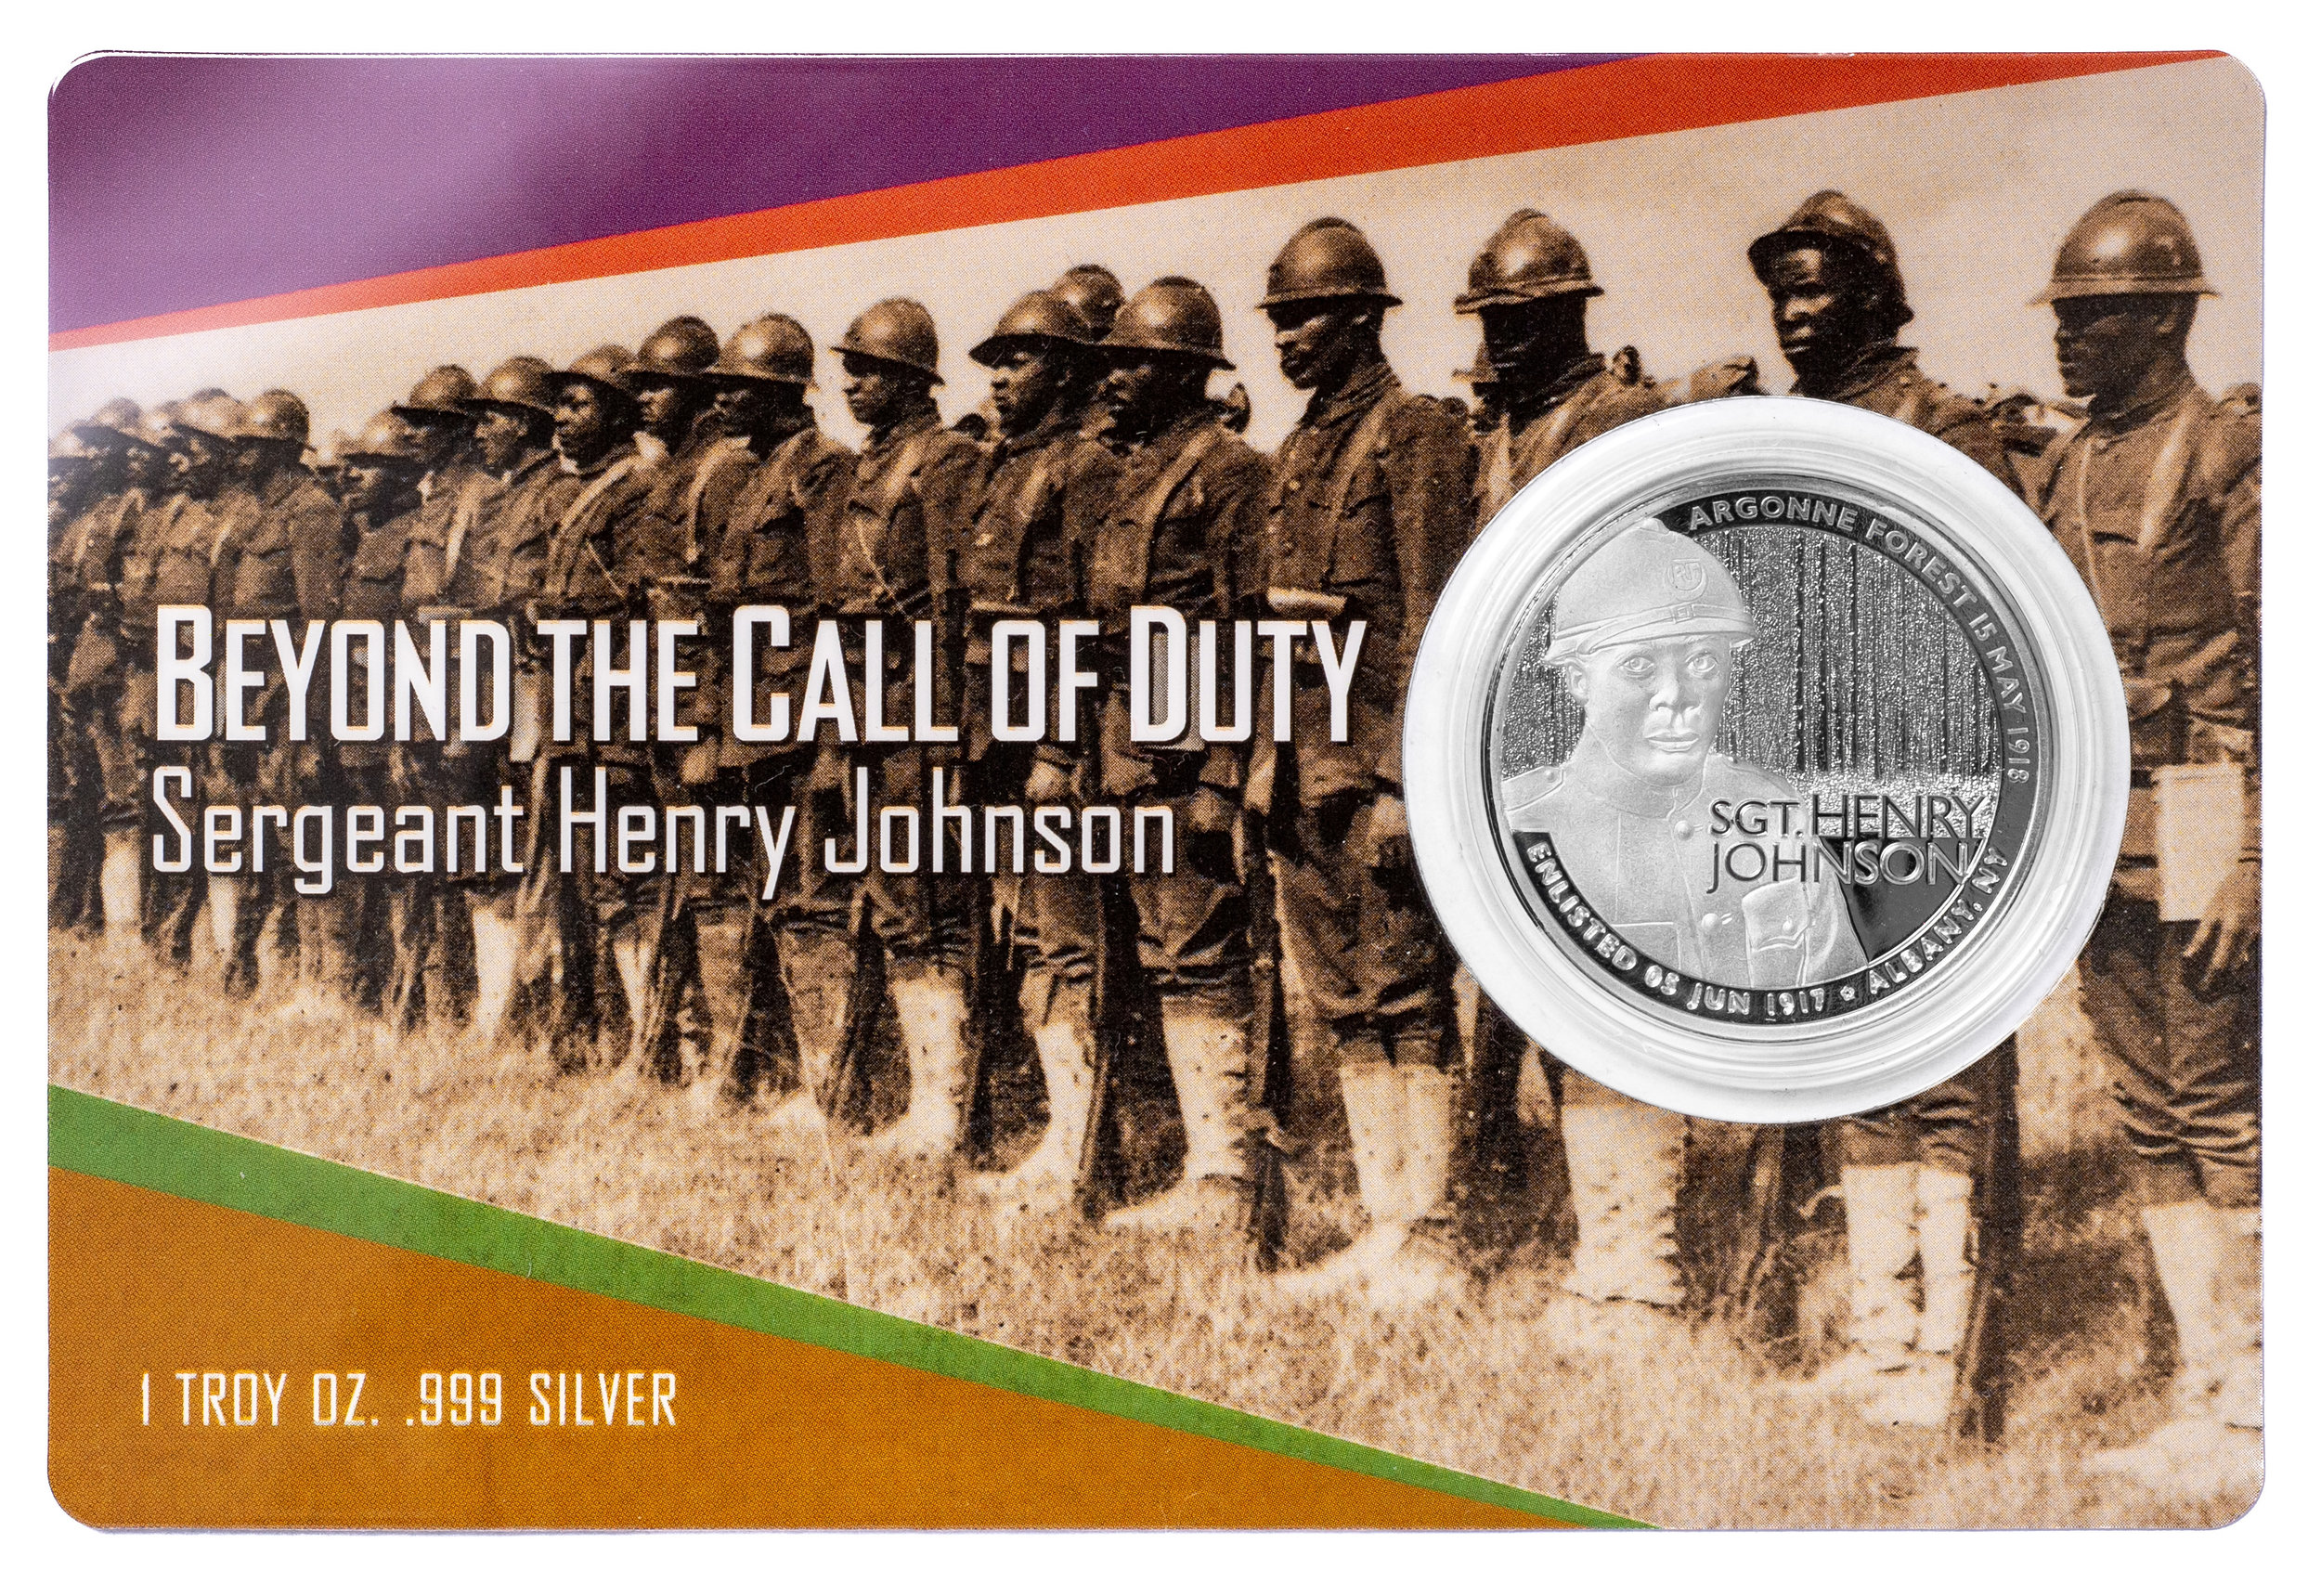 03-inPackage-Sgt-HenryJohnson-Obverse-reflection.jpg